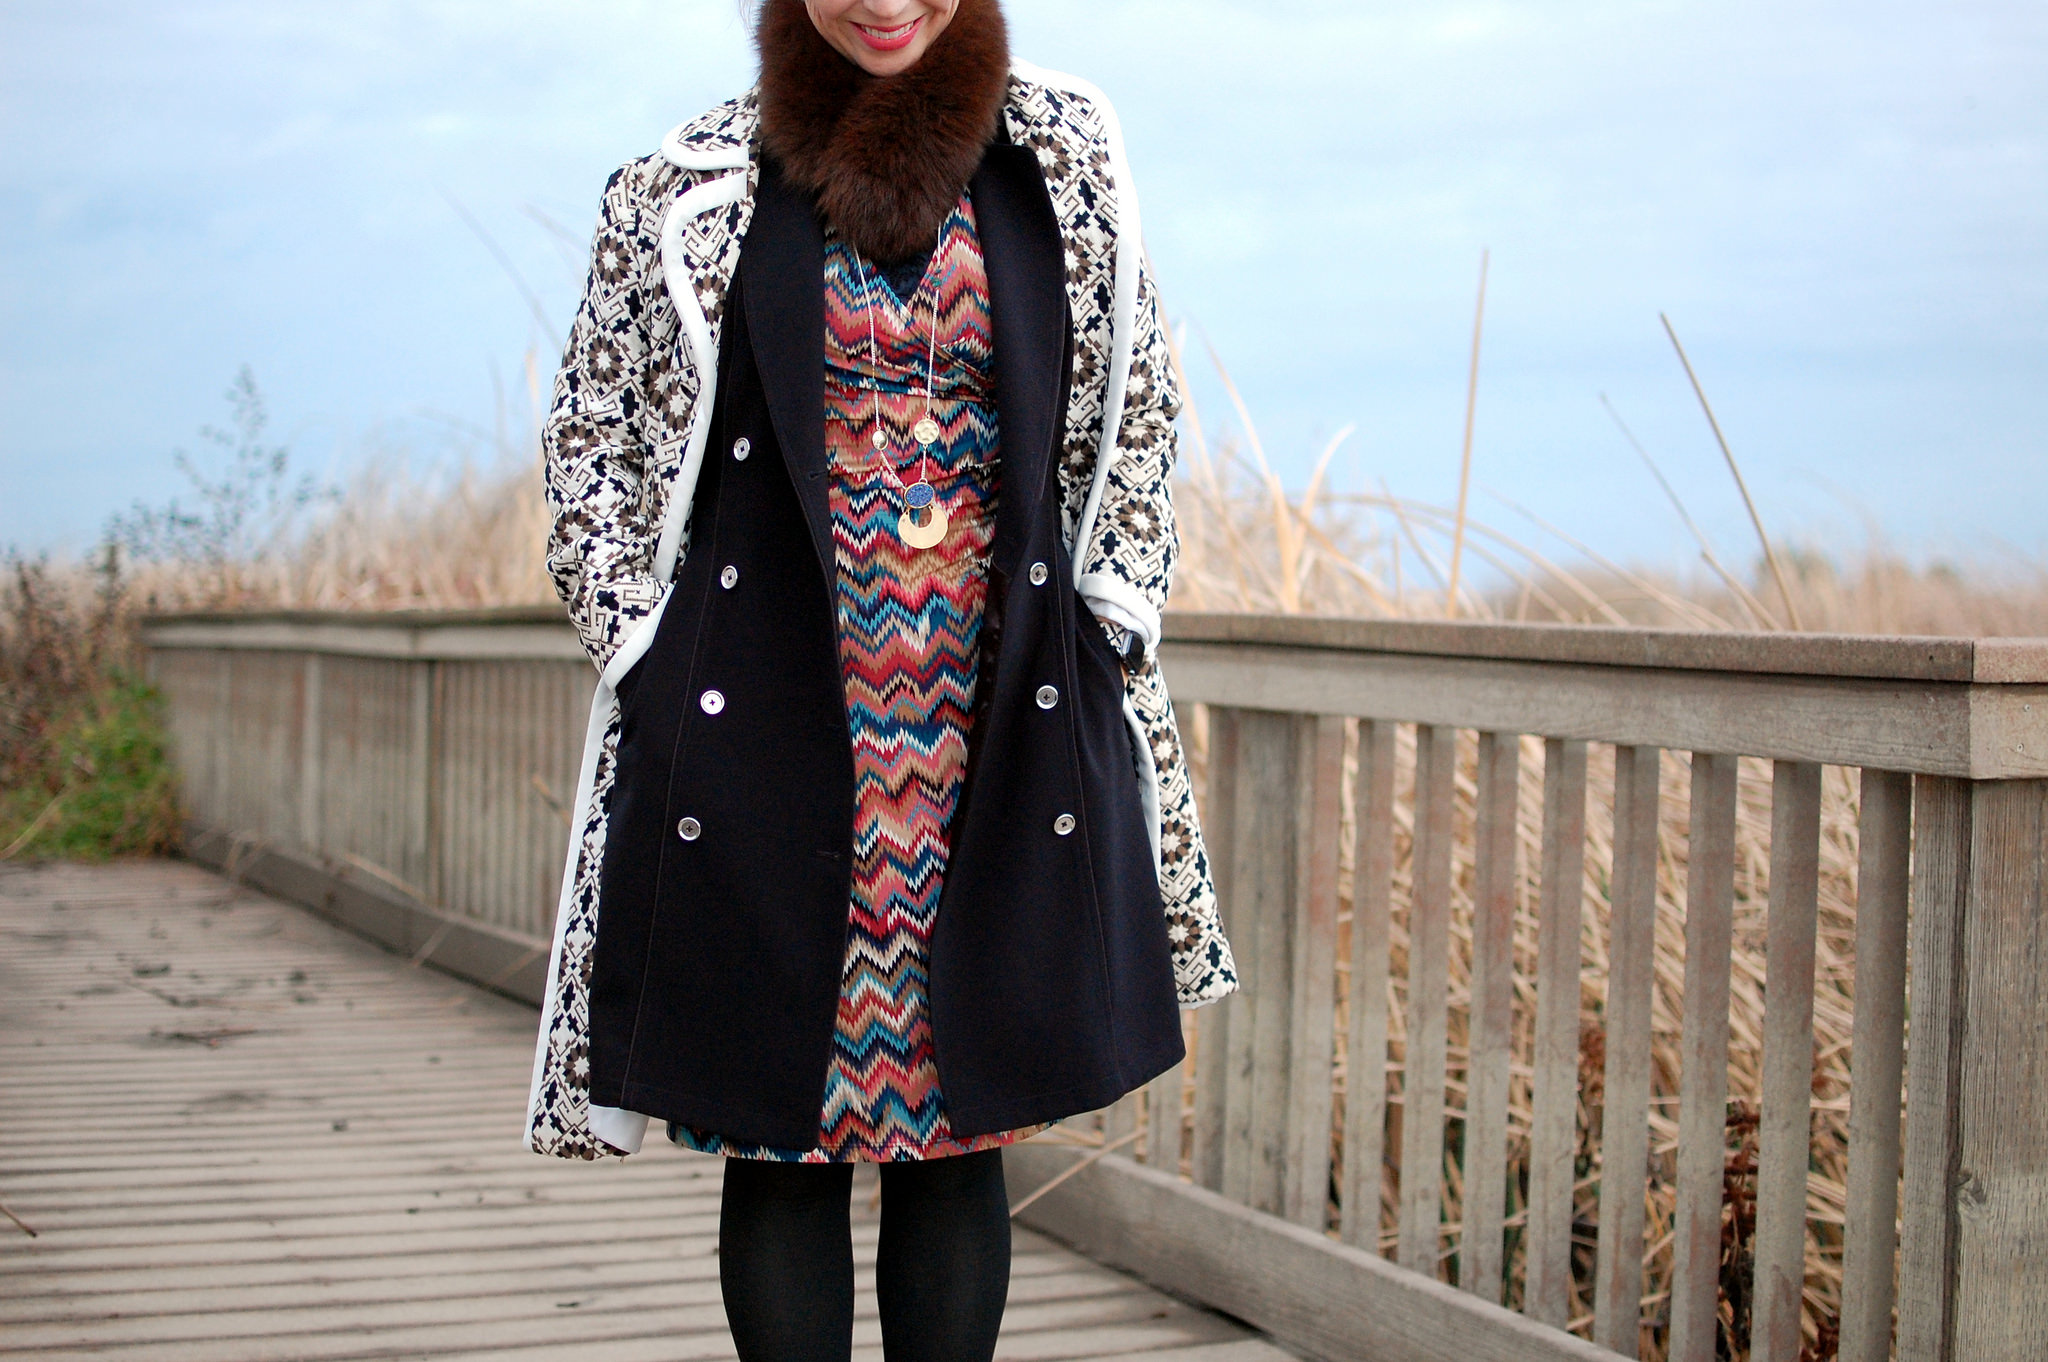 vintage coat trench vest missoni knockoff fur scarf daily outfit blog ootd whatiwore2day